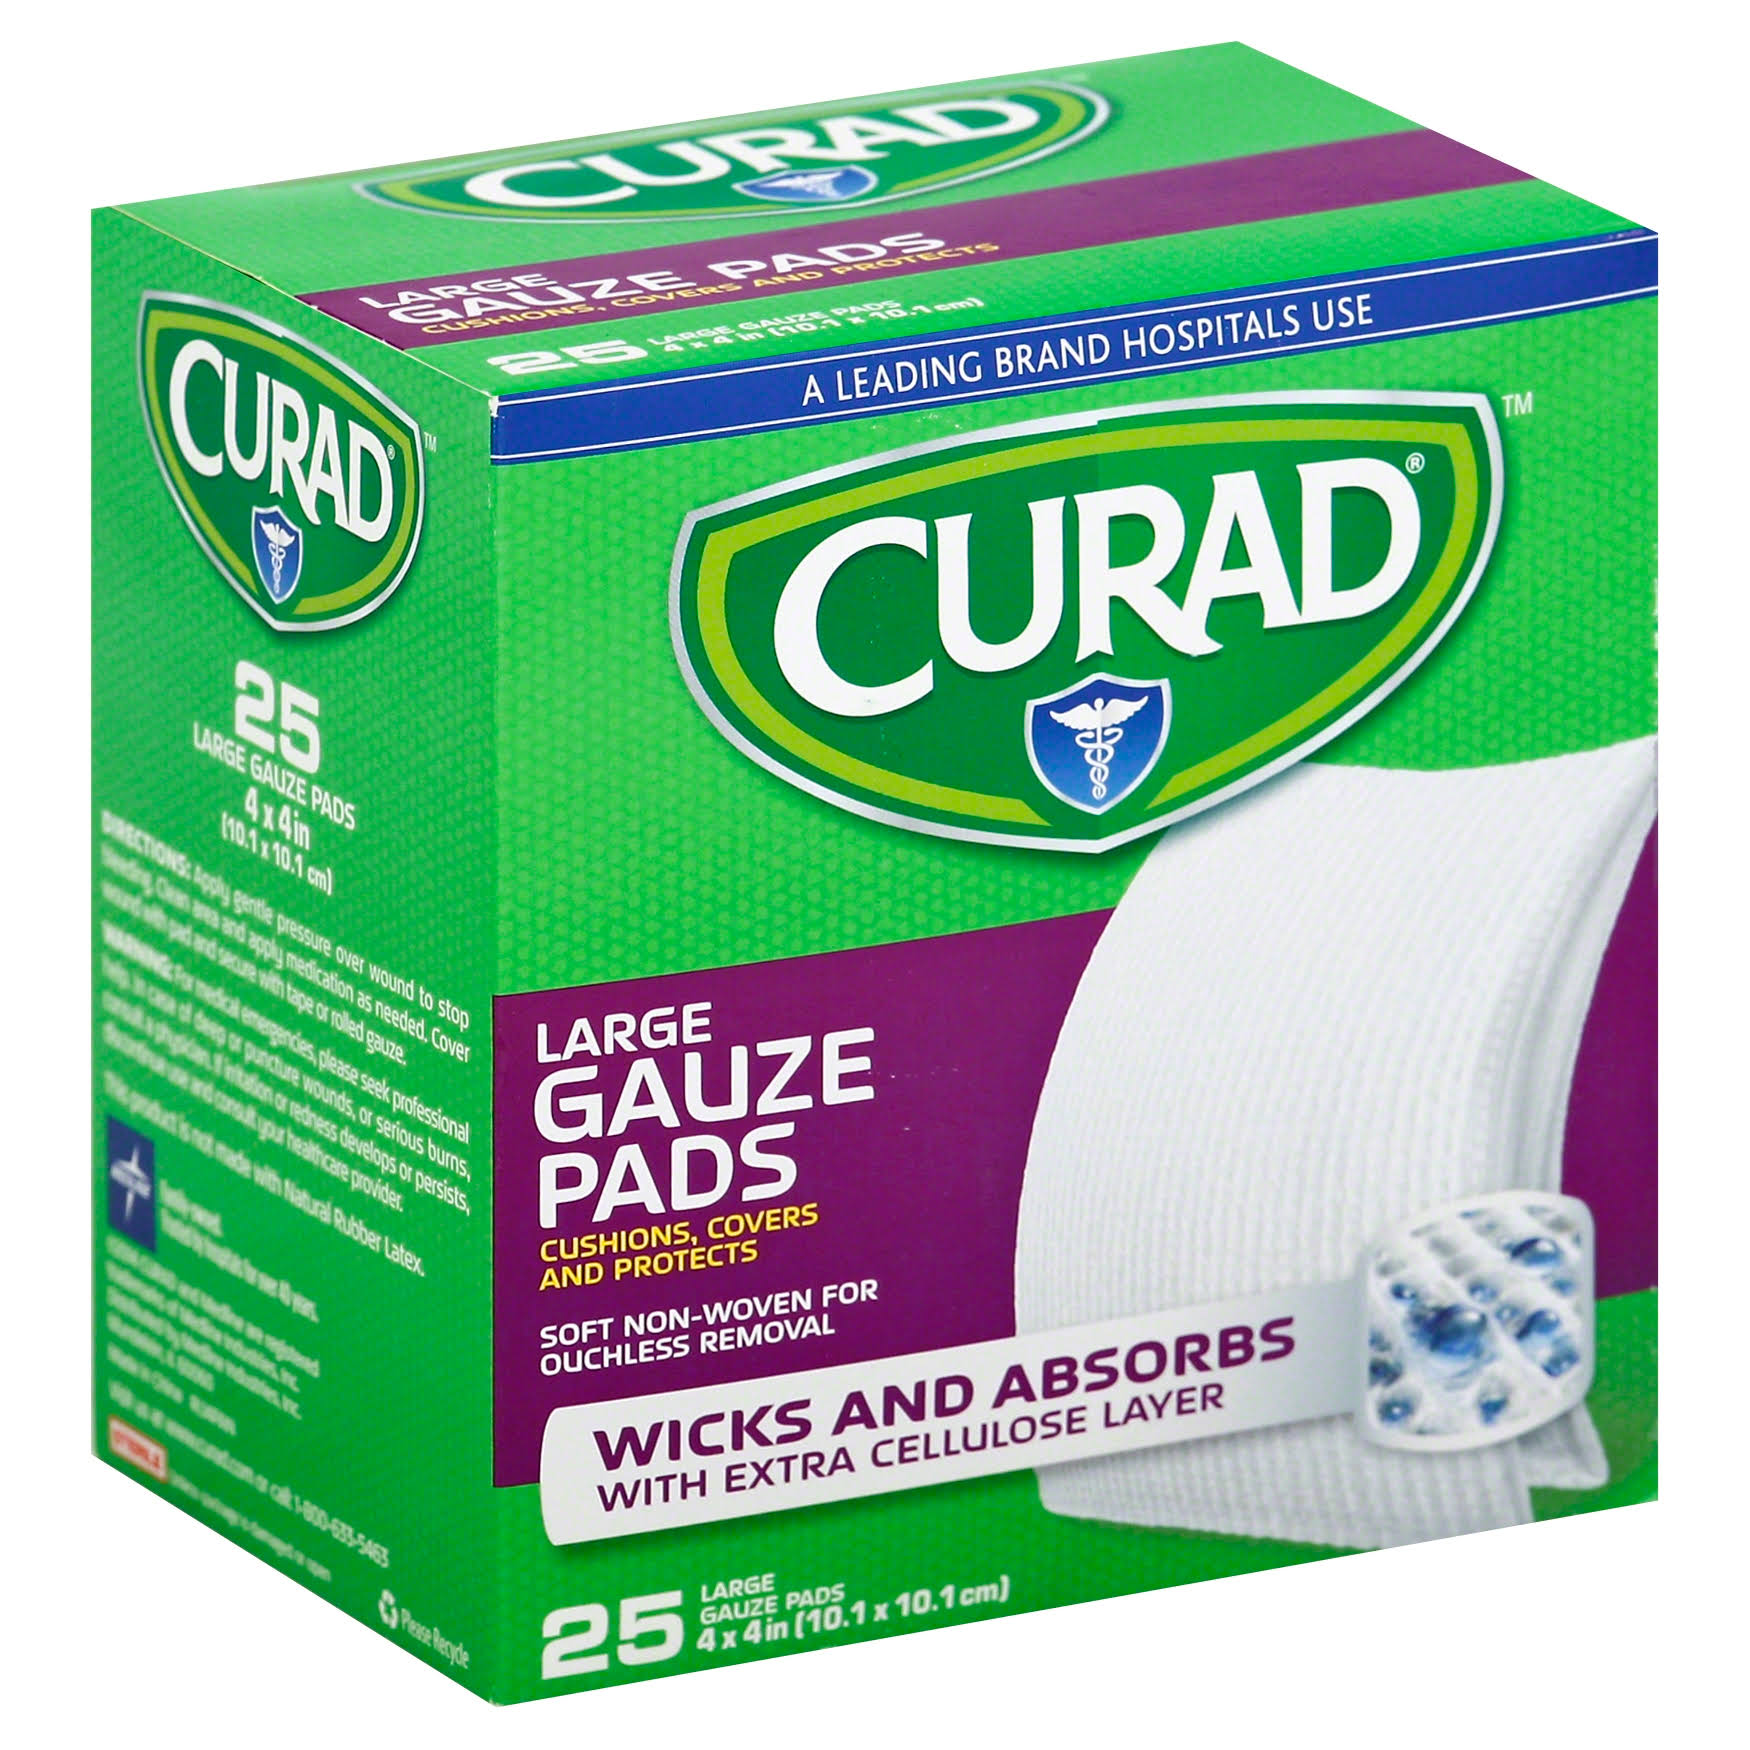 Curad Pro-Gauze Sterile Pads - 25 Sterile Pads, Large